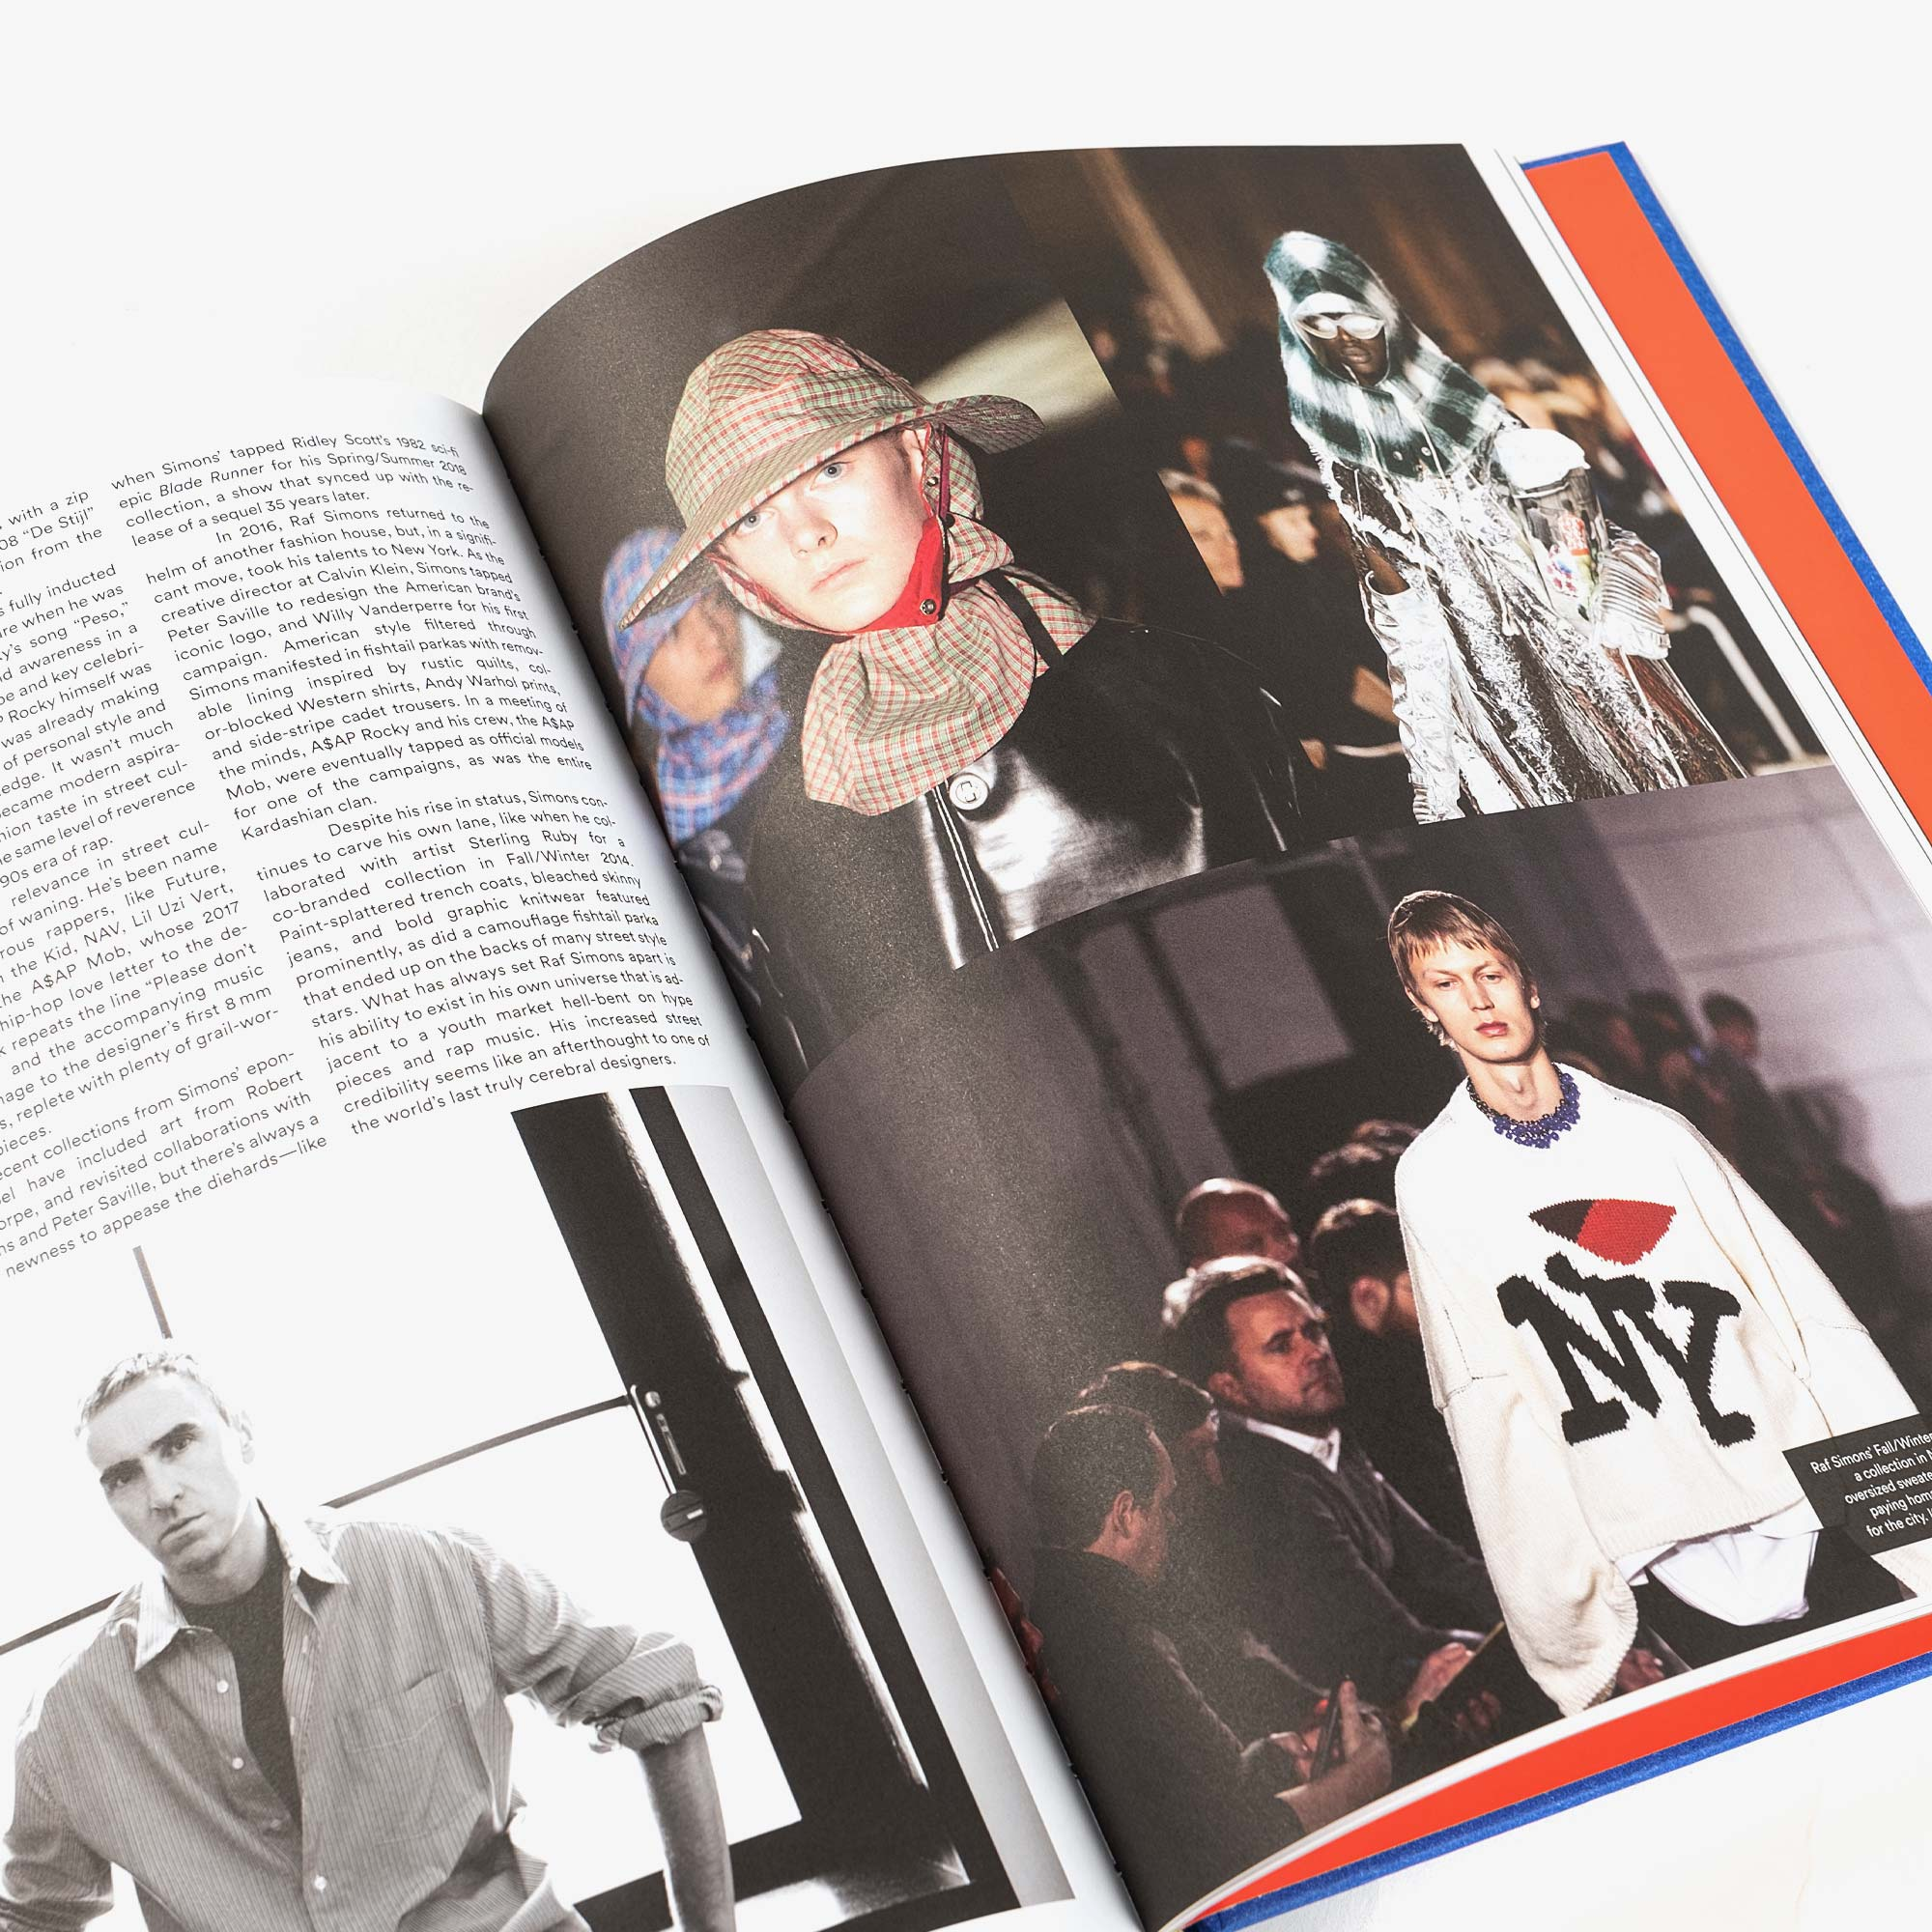 Gestalten The Complete Highsnobiety Guide To Street Fashion And Culture - High Snobiety 4